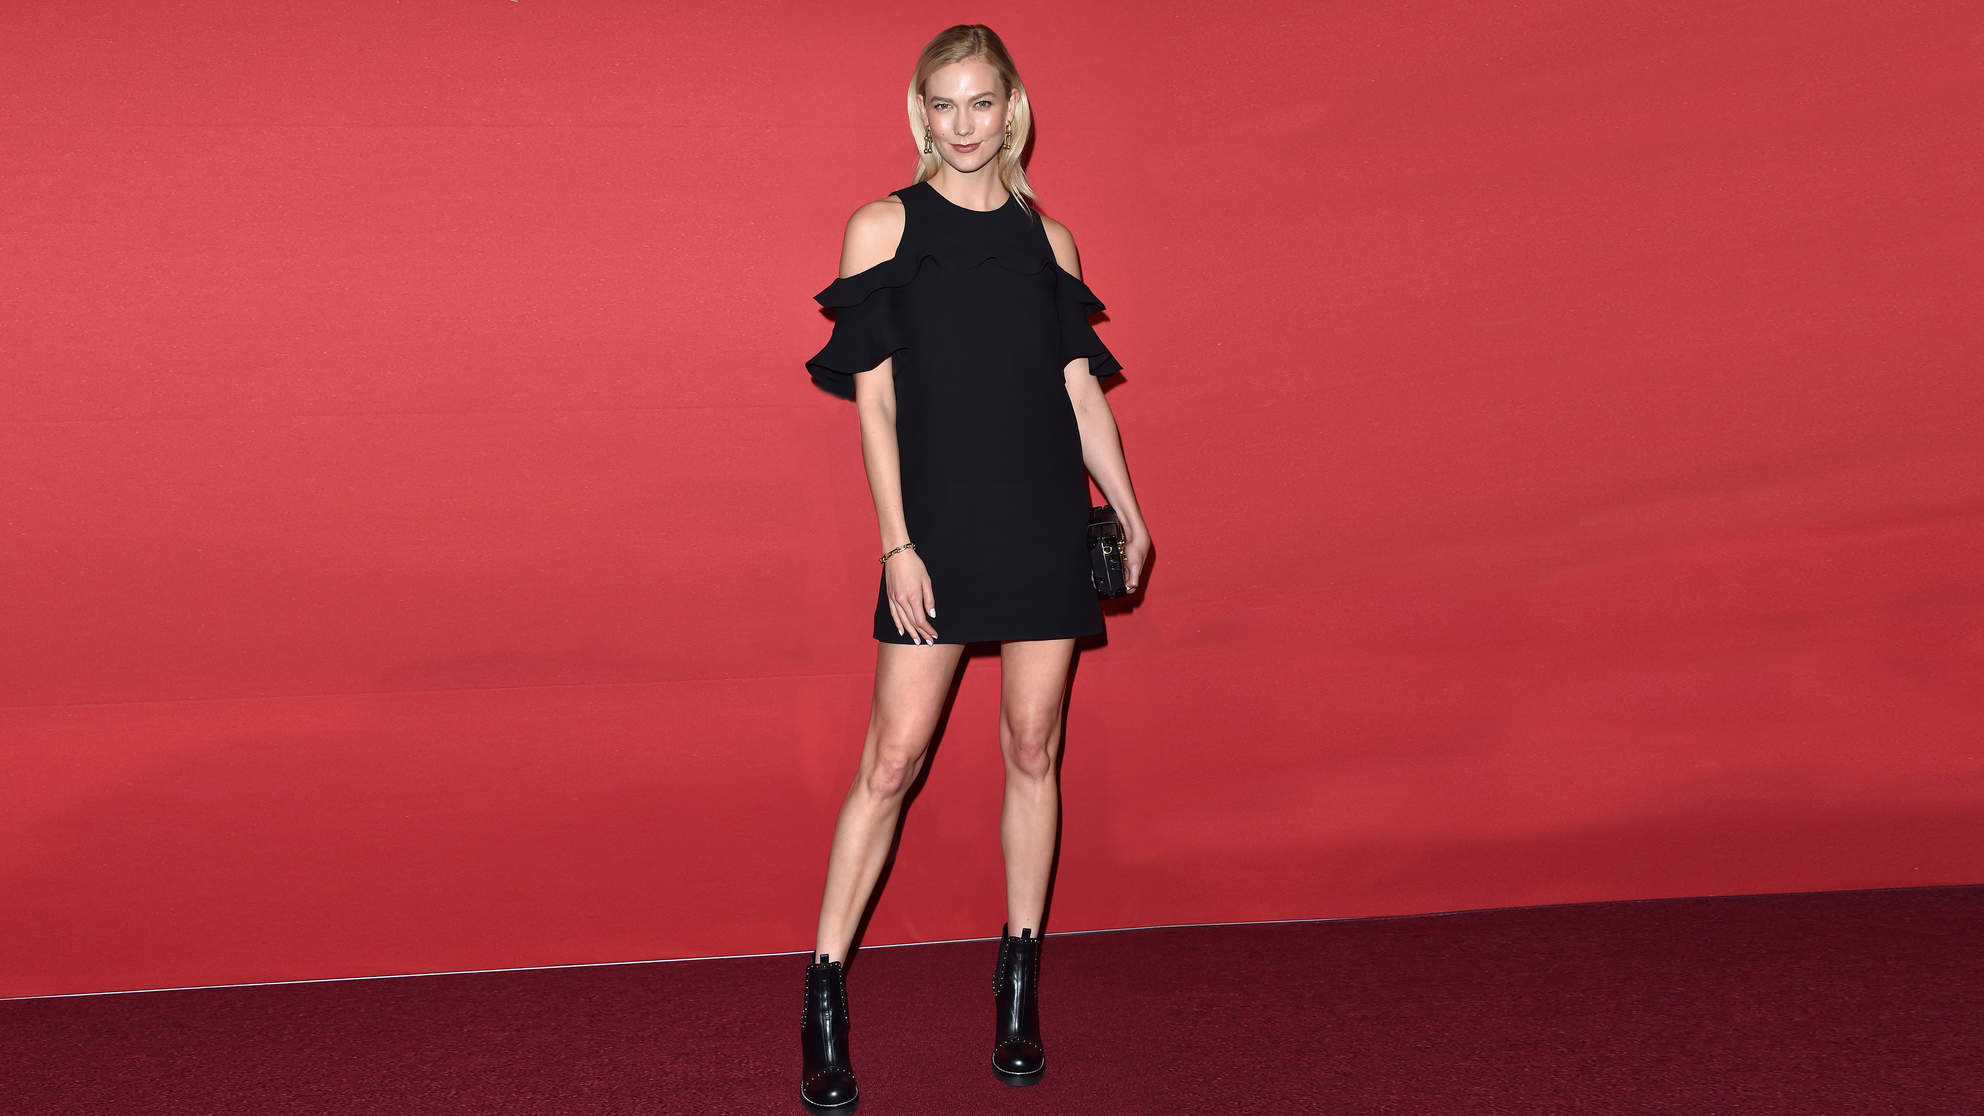 This Is the Lower-Body Move Karlie Kloss Does for Strong, Lean Legs